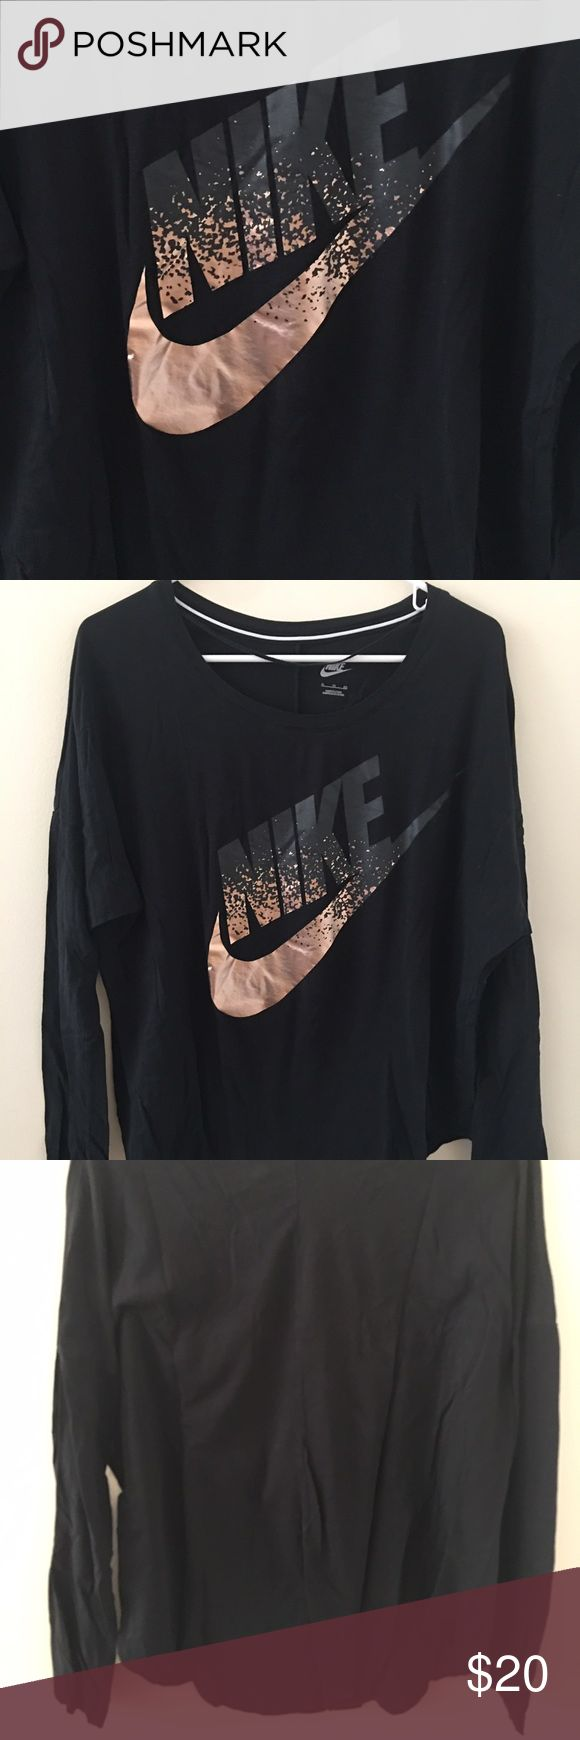 Rose Gold Nike long sleeve shirt size XL Wore a 1 time and washed it needs ironed smoke free home any question please ask Nike Tops Tees - Long Sleeve